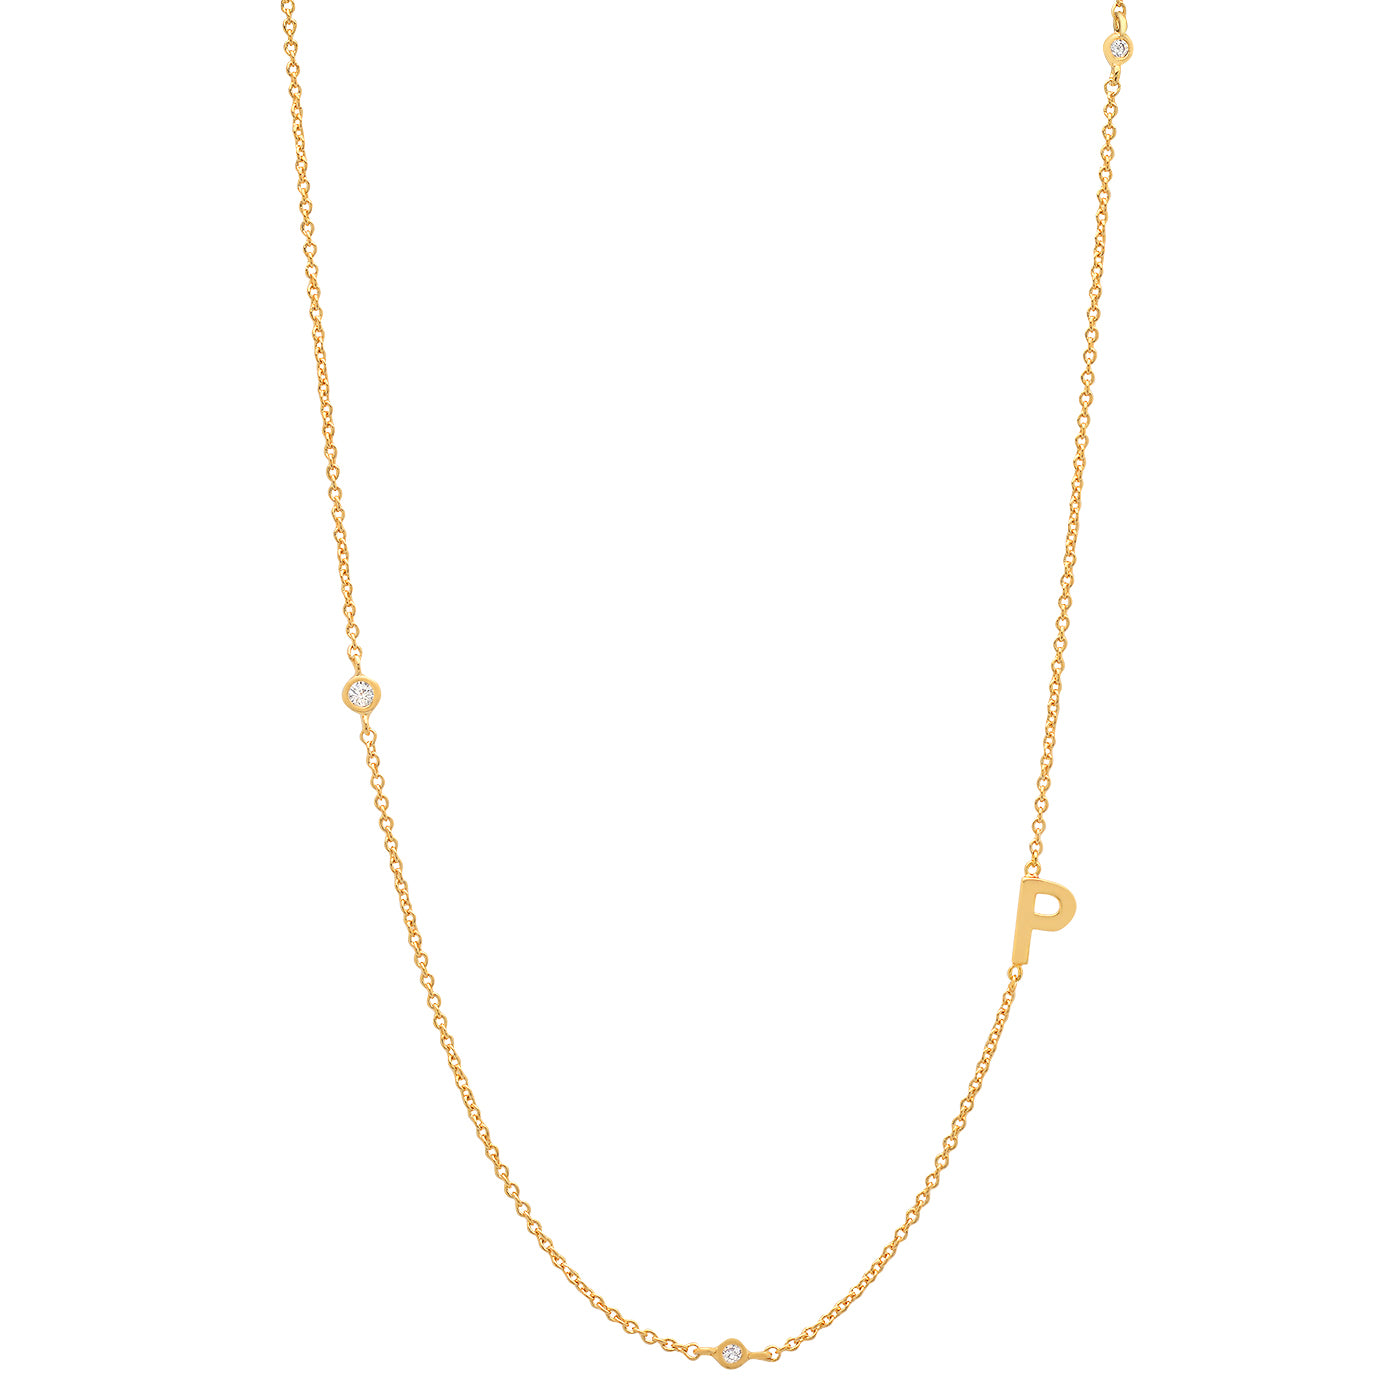 Sideways Initial Gold Necklace with CZ accents